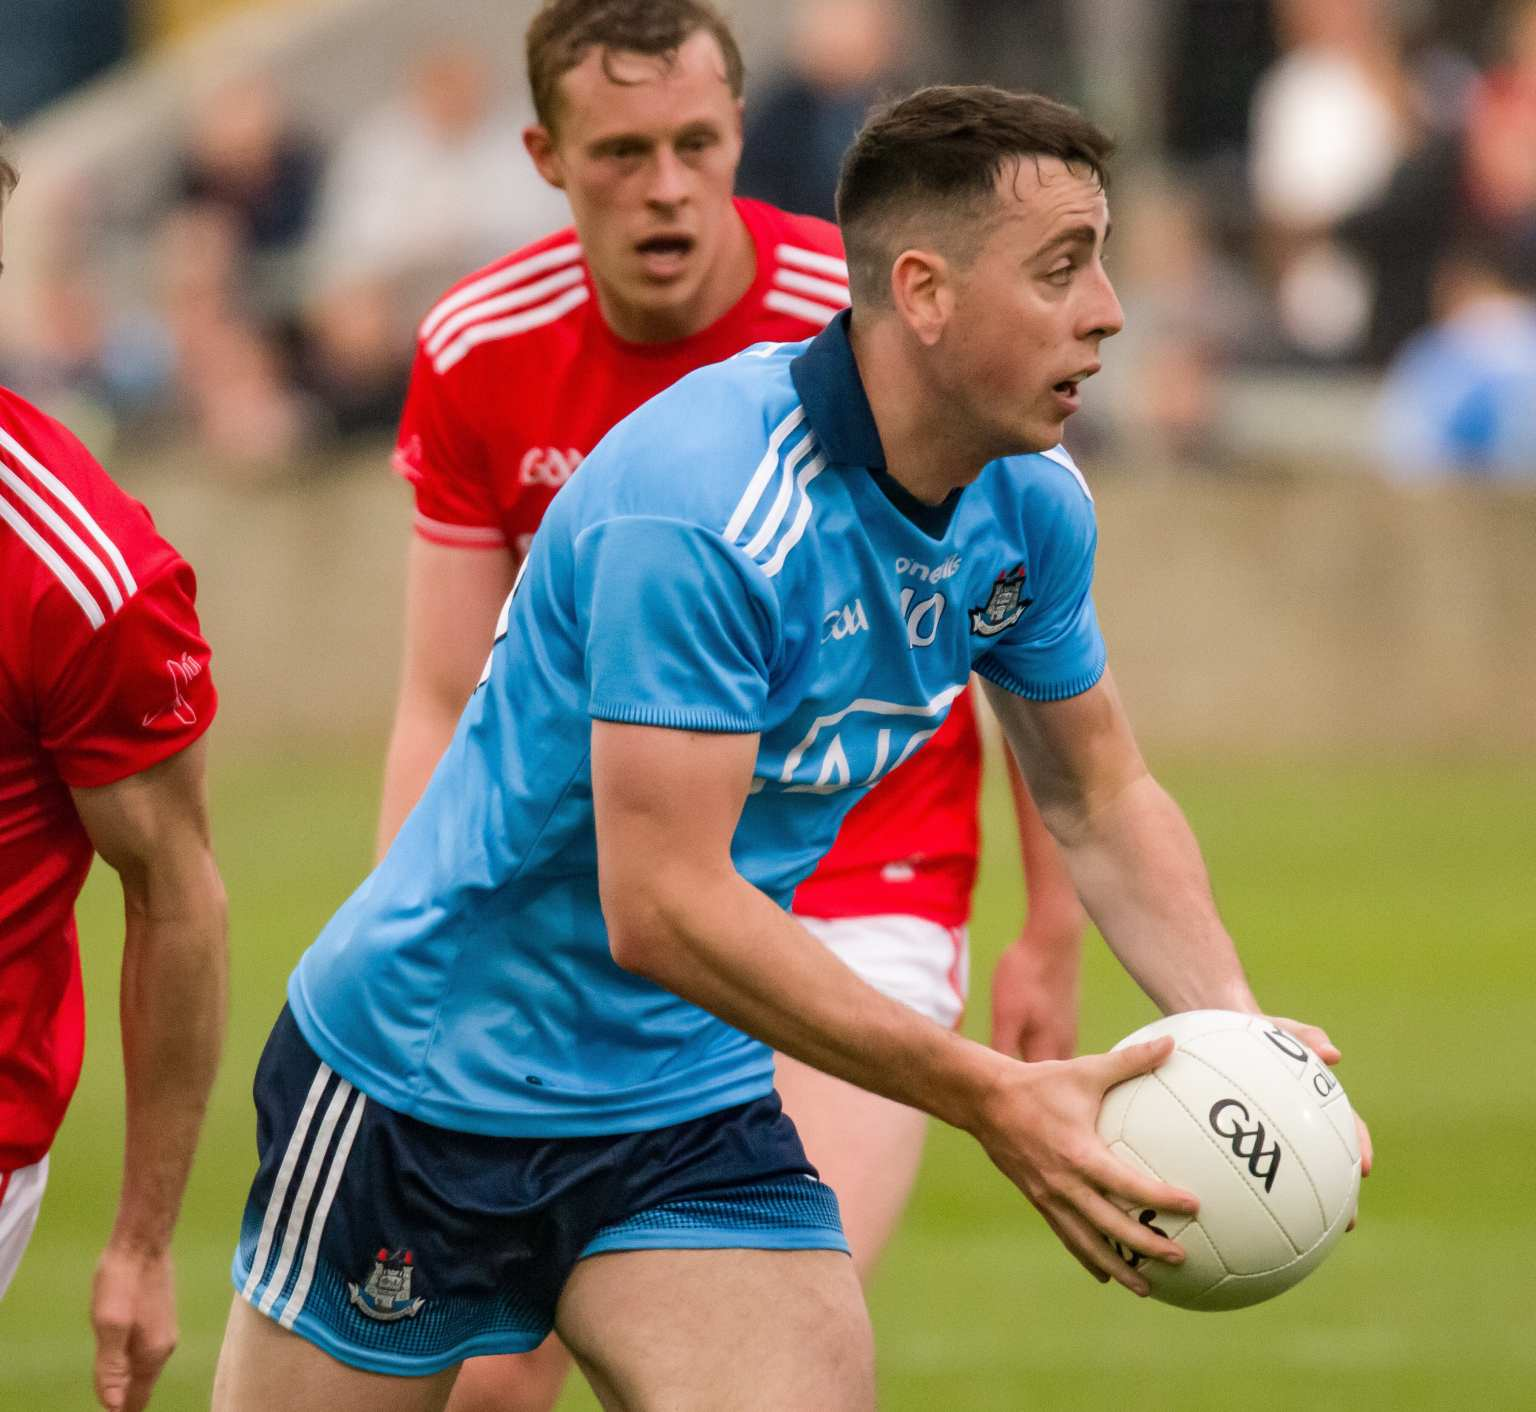 Dublin footballer Cormac Costello in action against Louth as Dublin got their drive for five up and running with a comfortable win